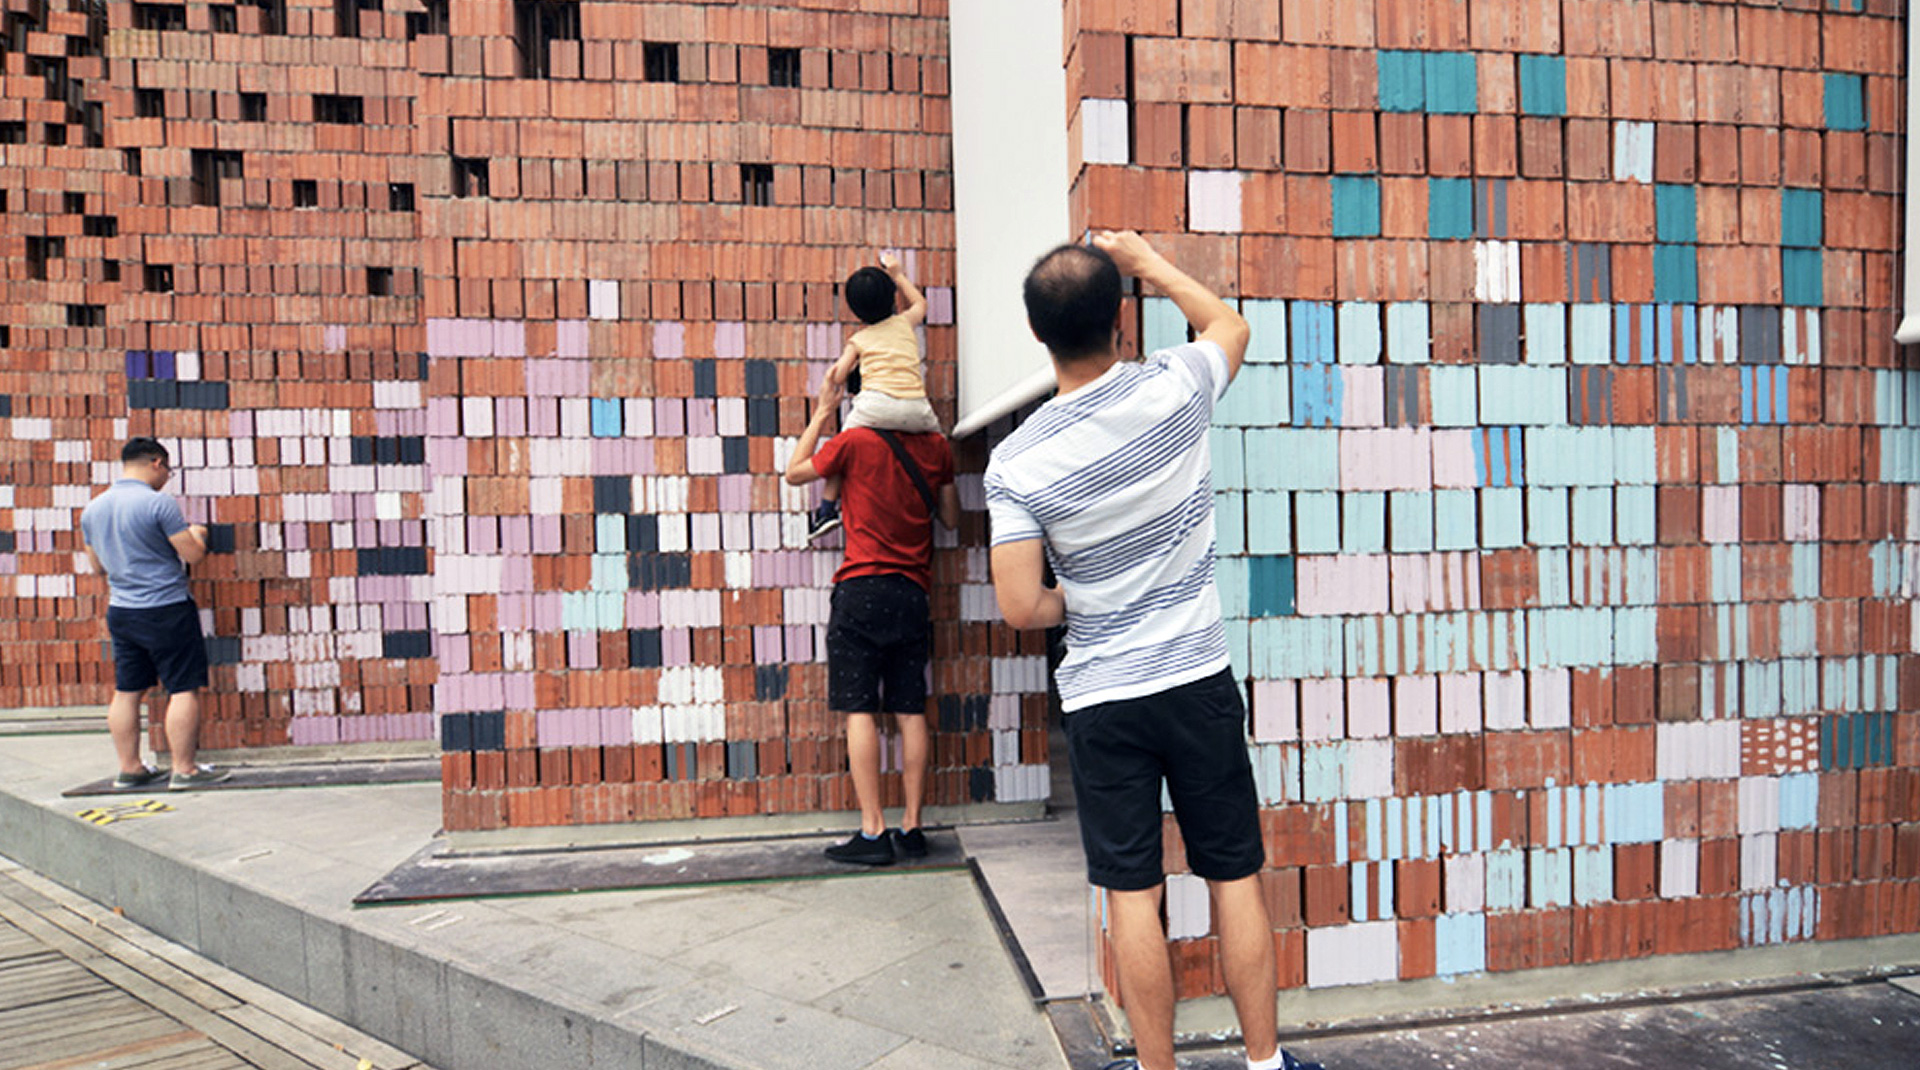 Dulux Singapore – Painting a Different Experience